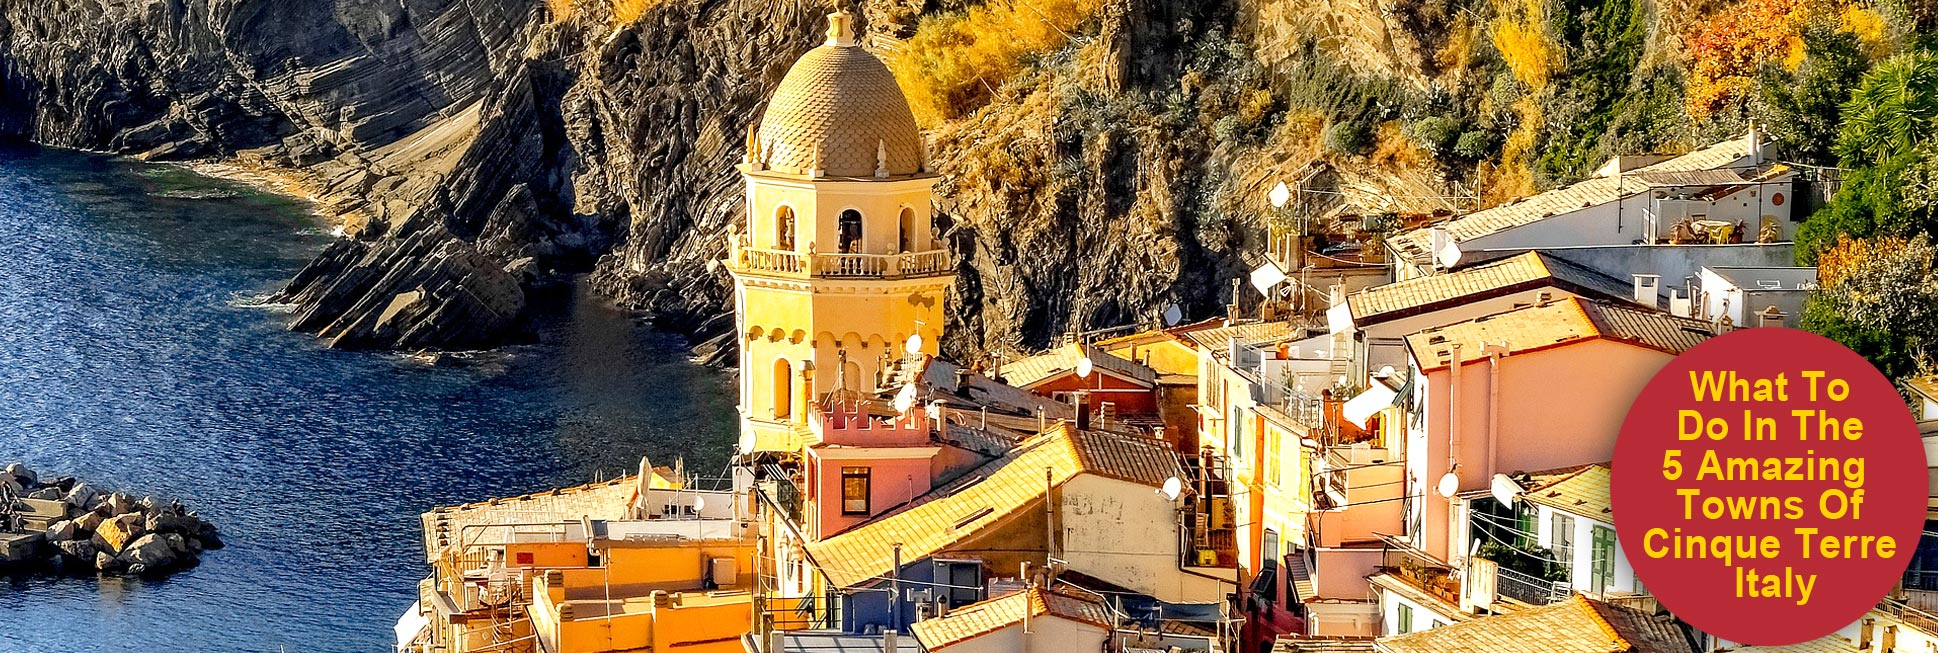 What To Do In The 5 Amazing Towns Of Cinque Terre Italy